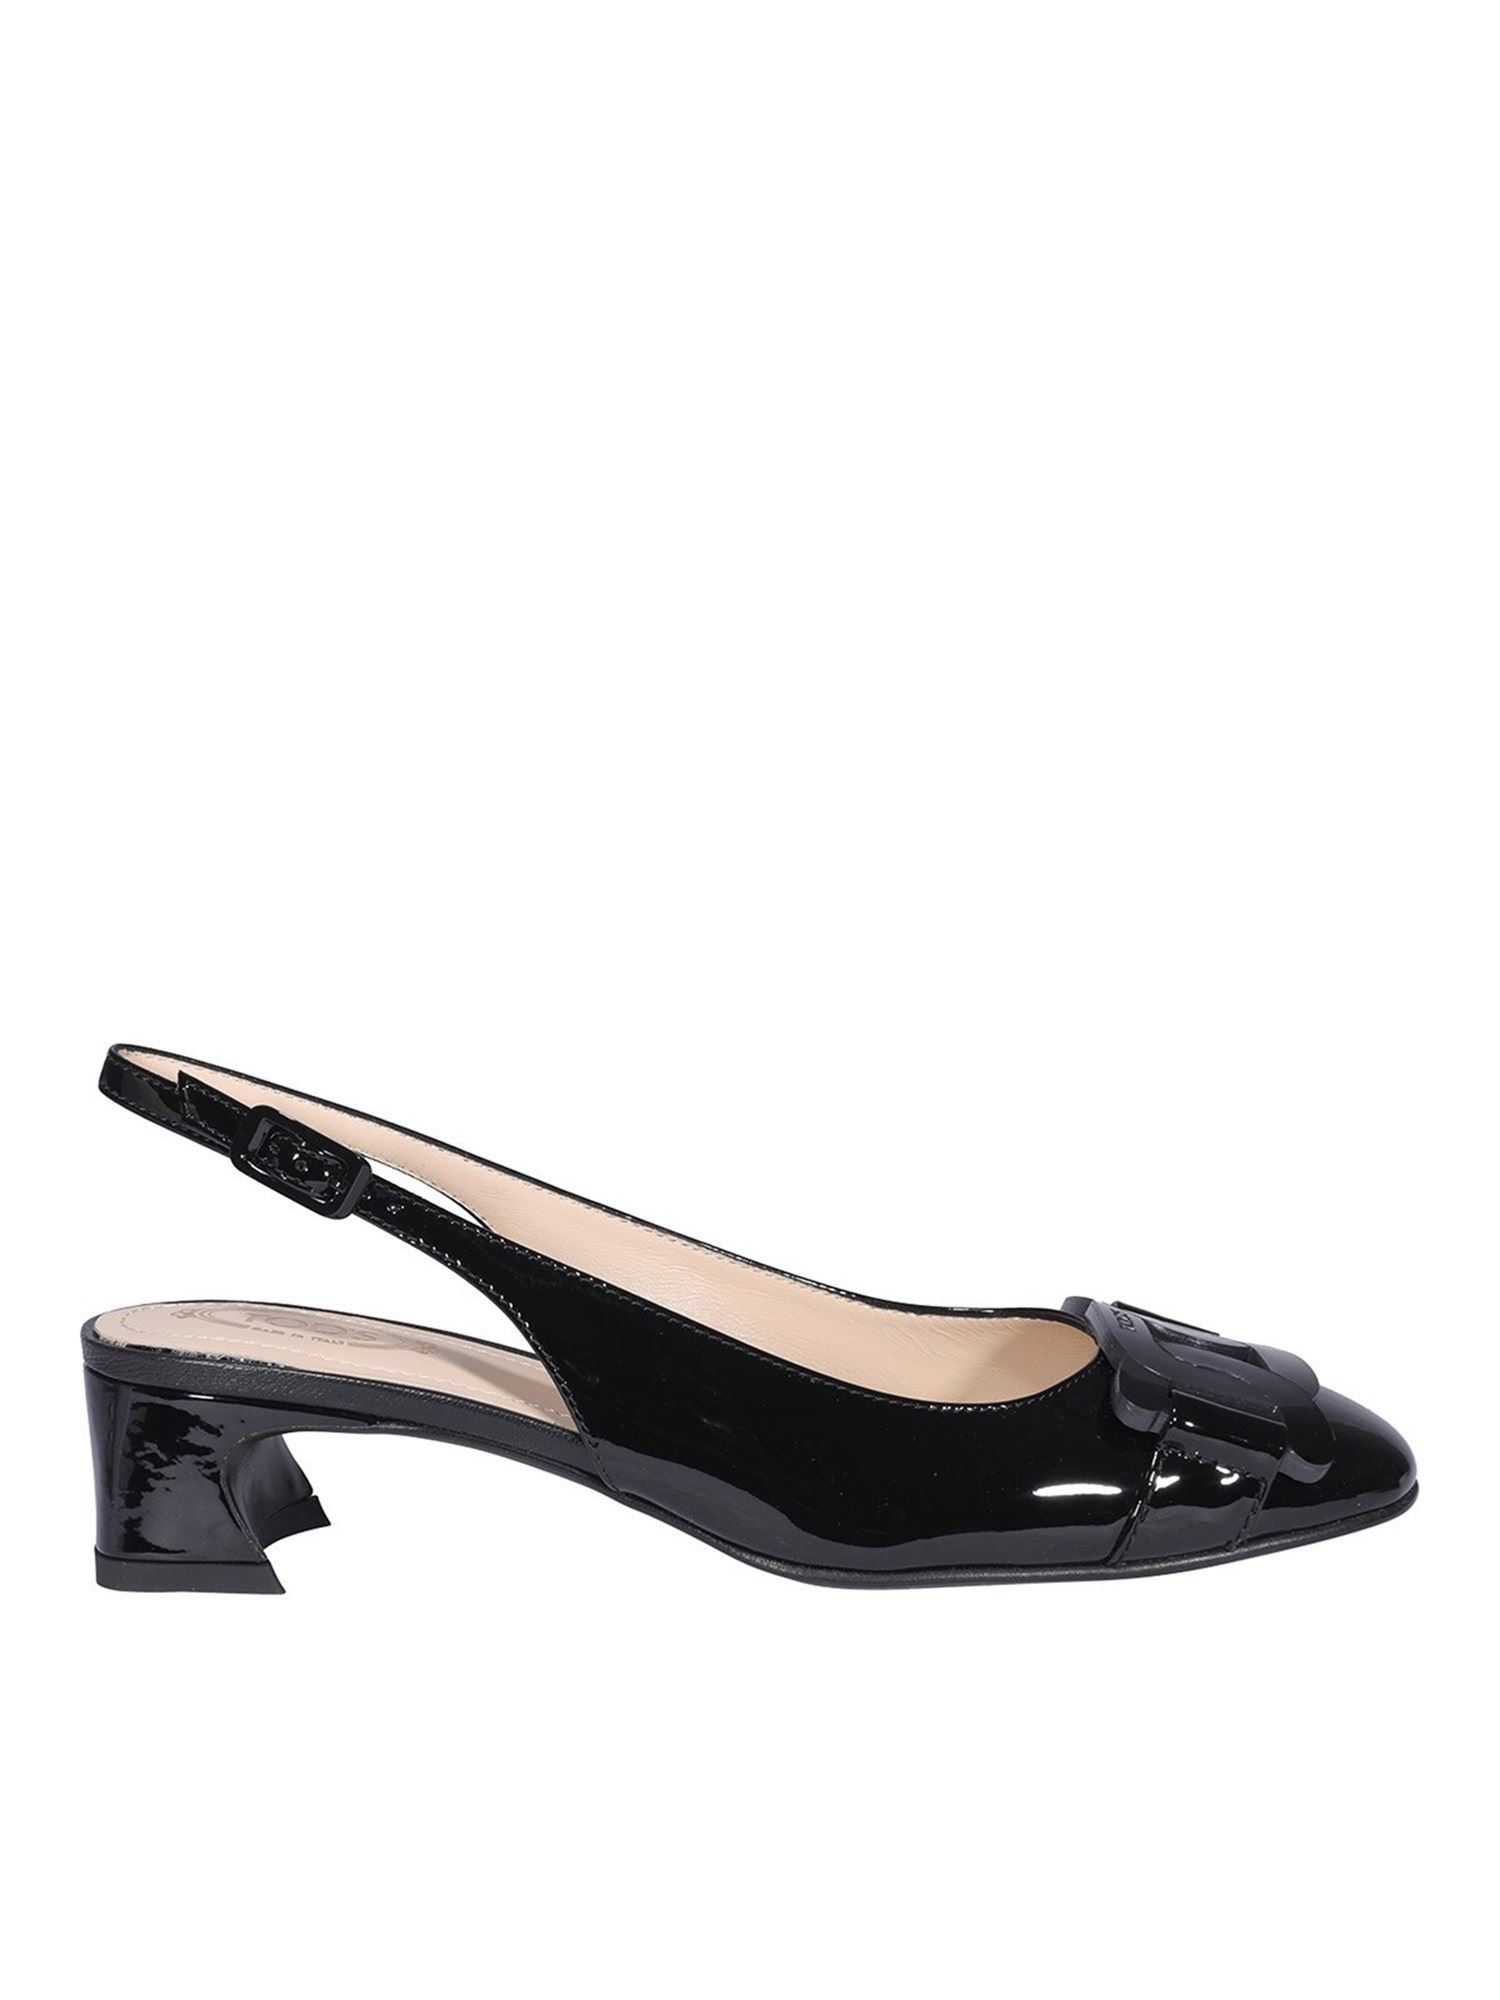 Tod's CHAIN TRIM PATENT LEATHER SLINGBACKS IN BLACK